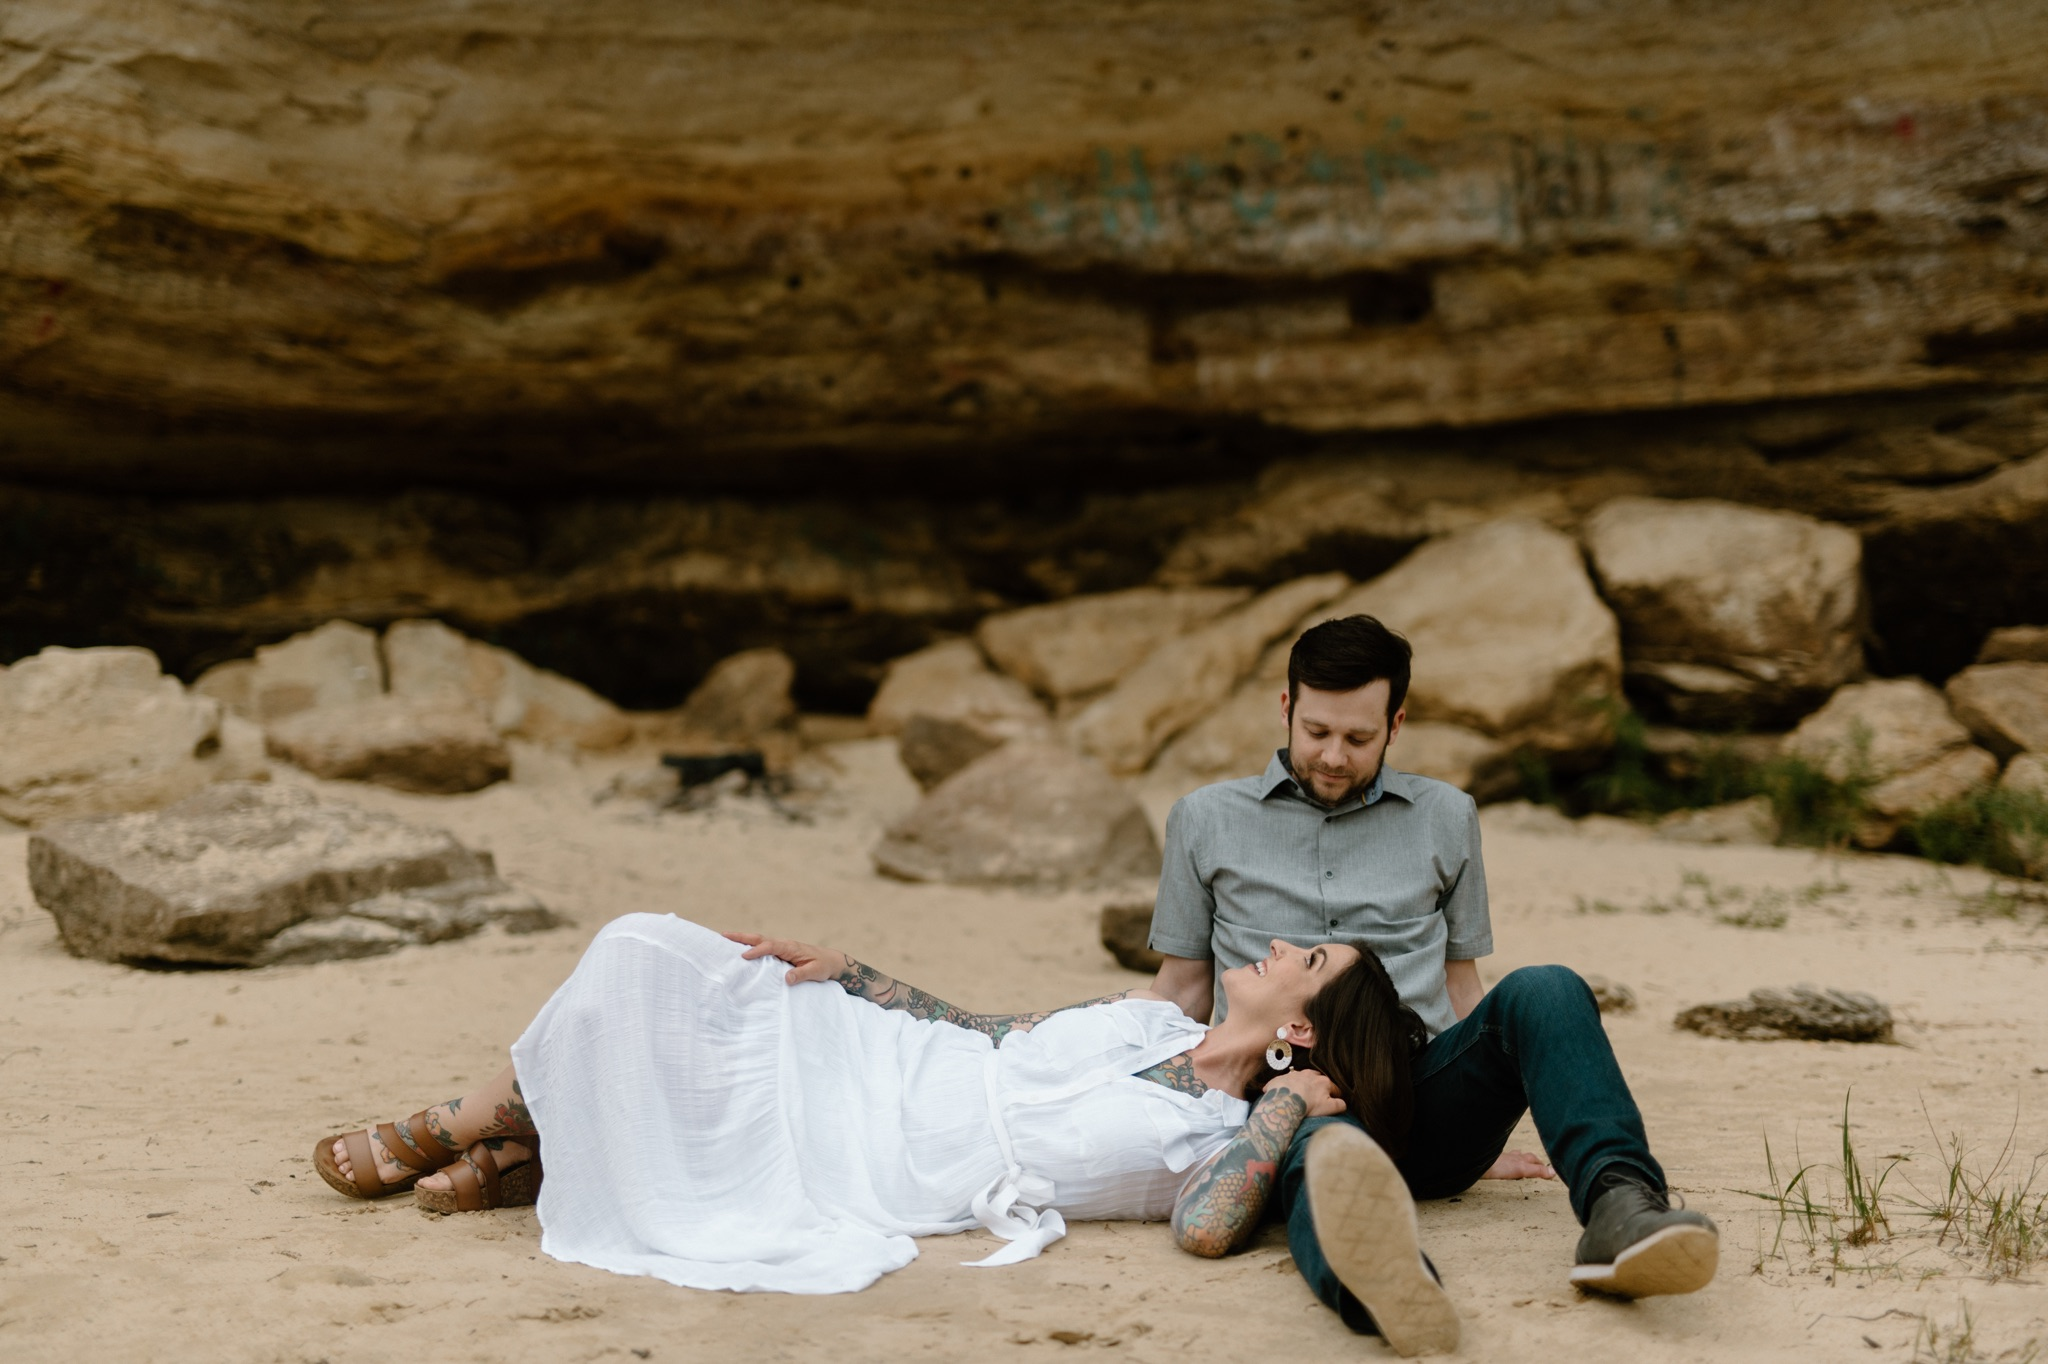 man sitting on beach and woman laying her head on man's lap